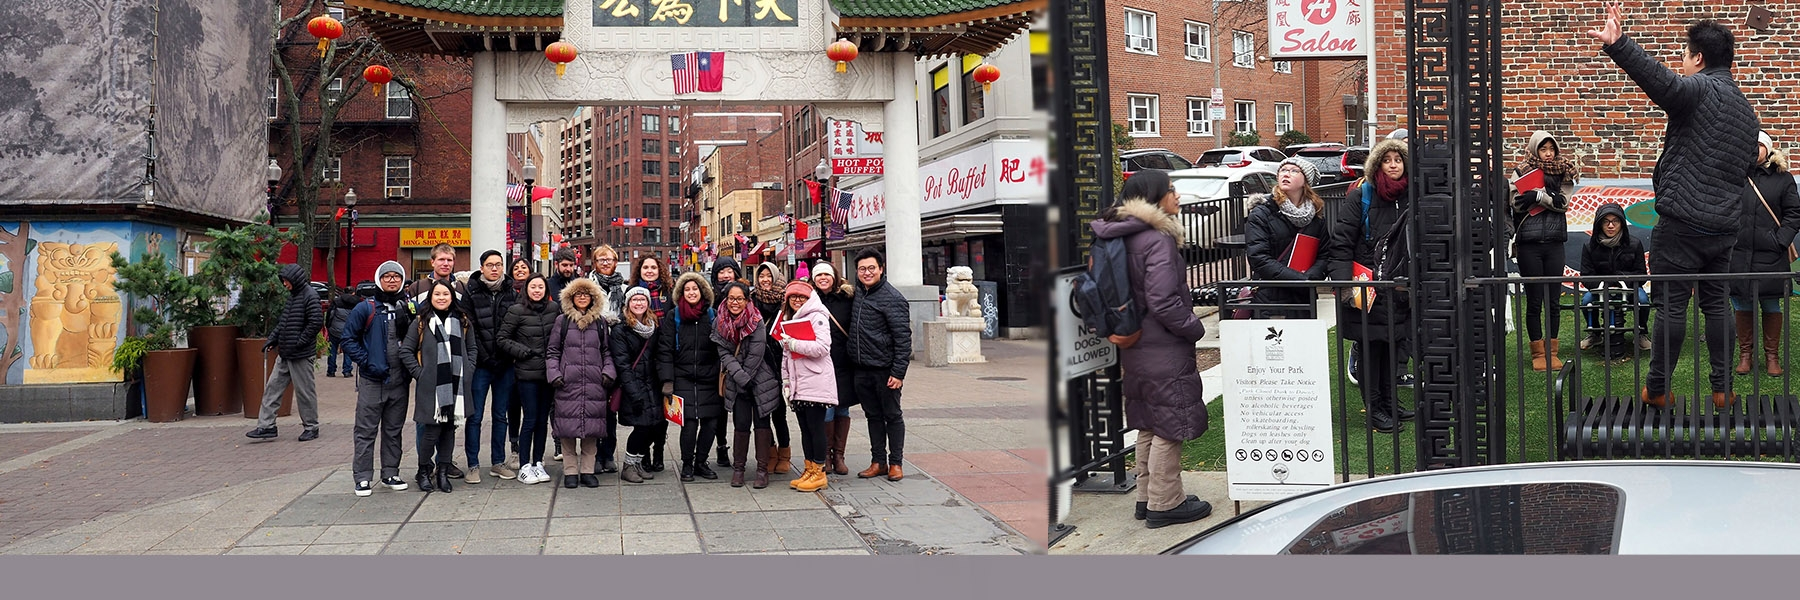 Chinatown walking tour group in action